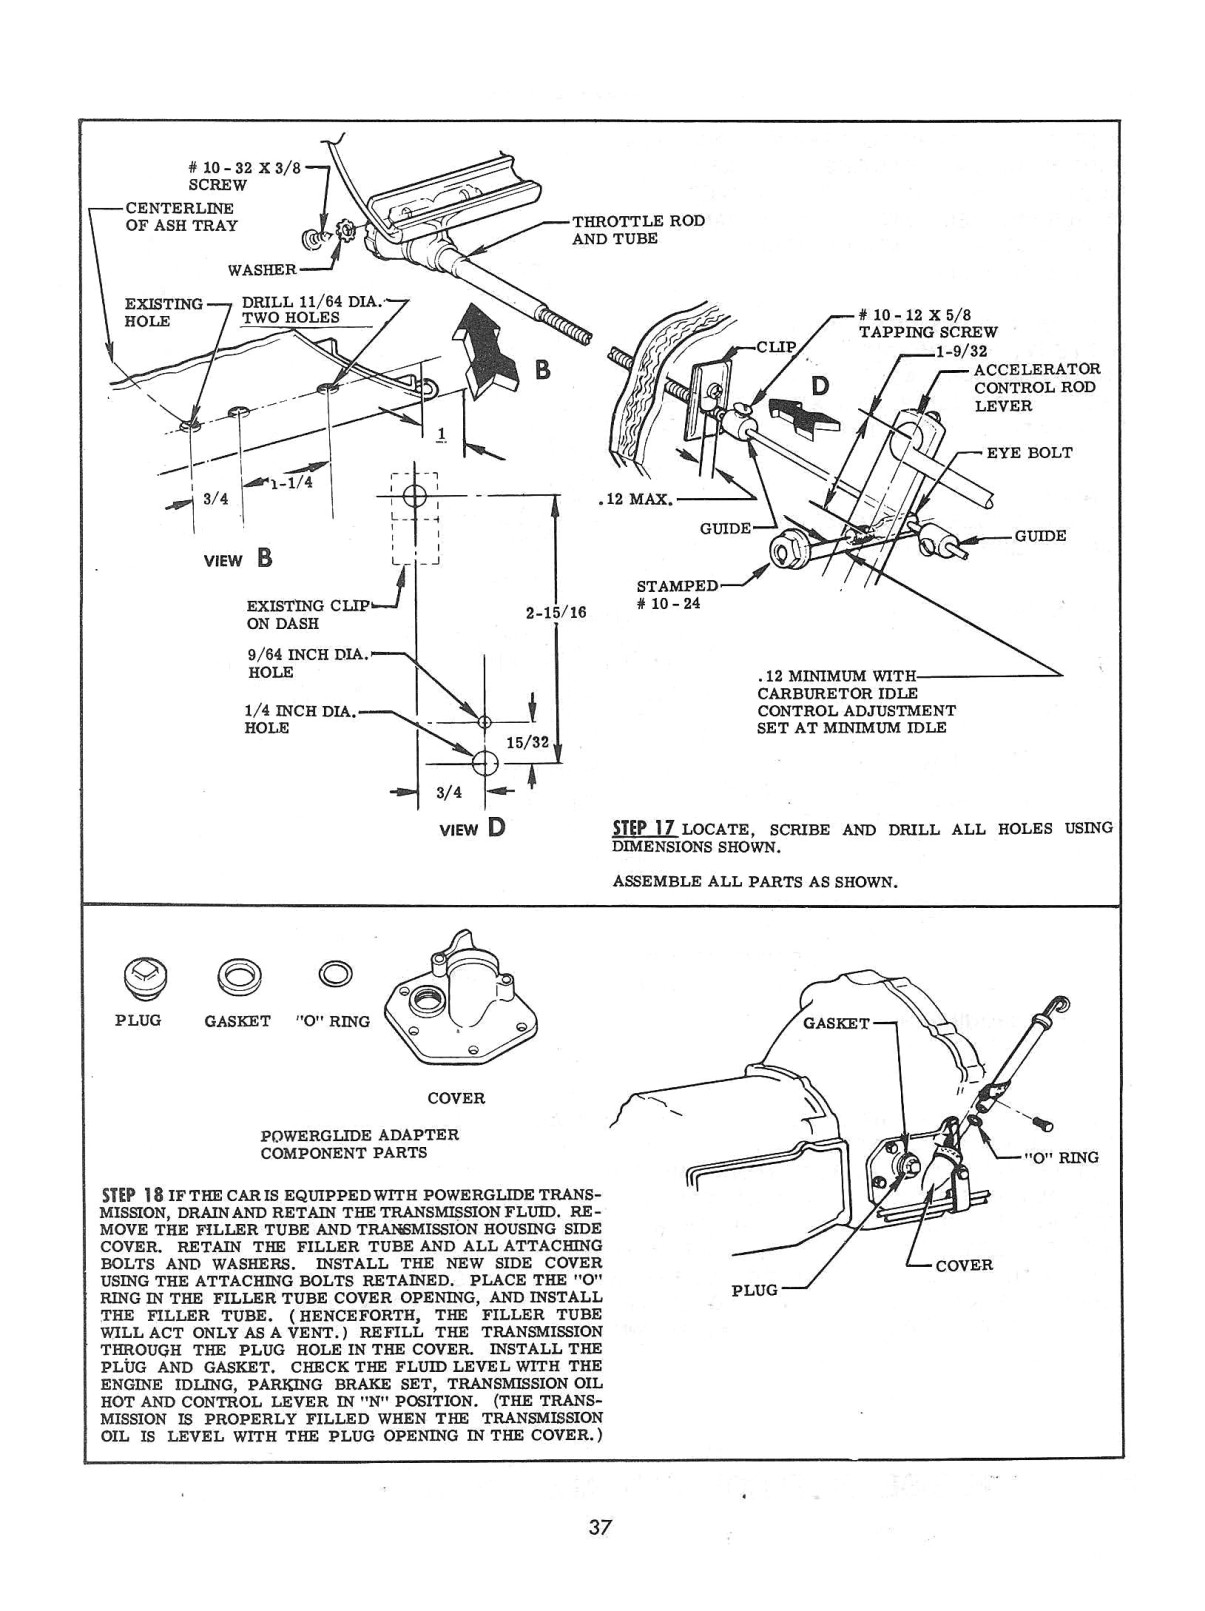 1957 Chevrolet Passenger Car and Truck Accessories